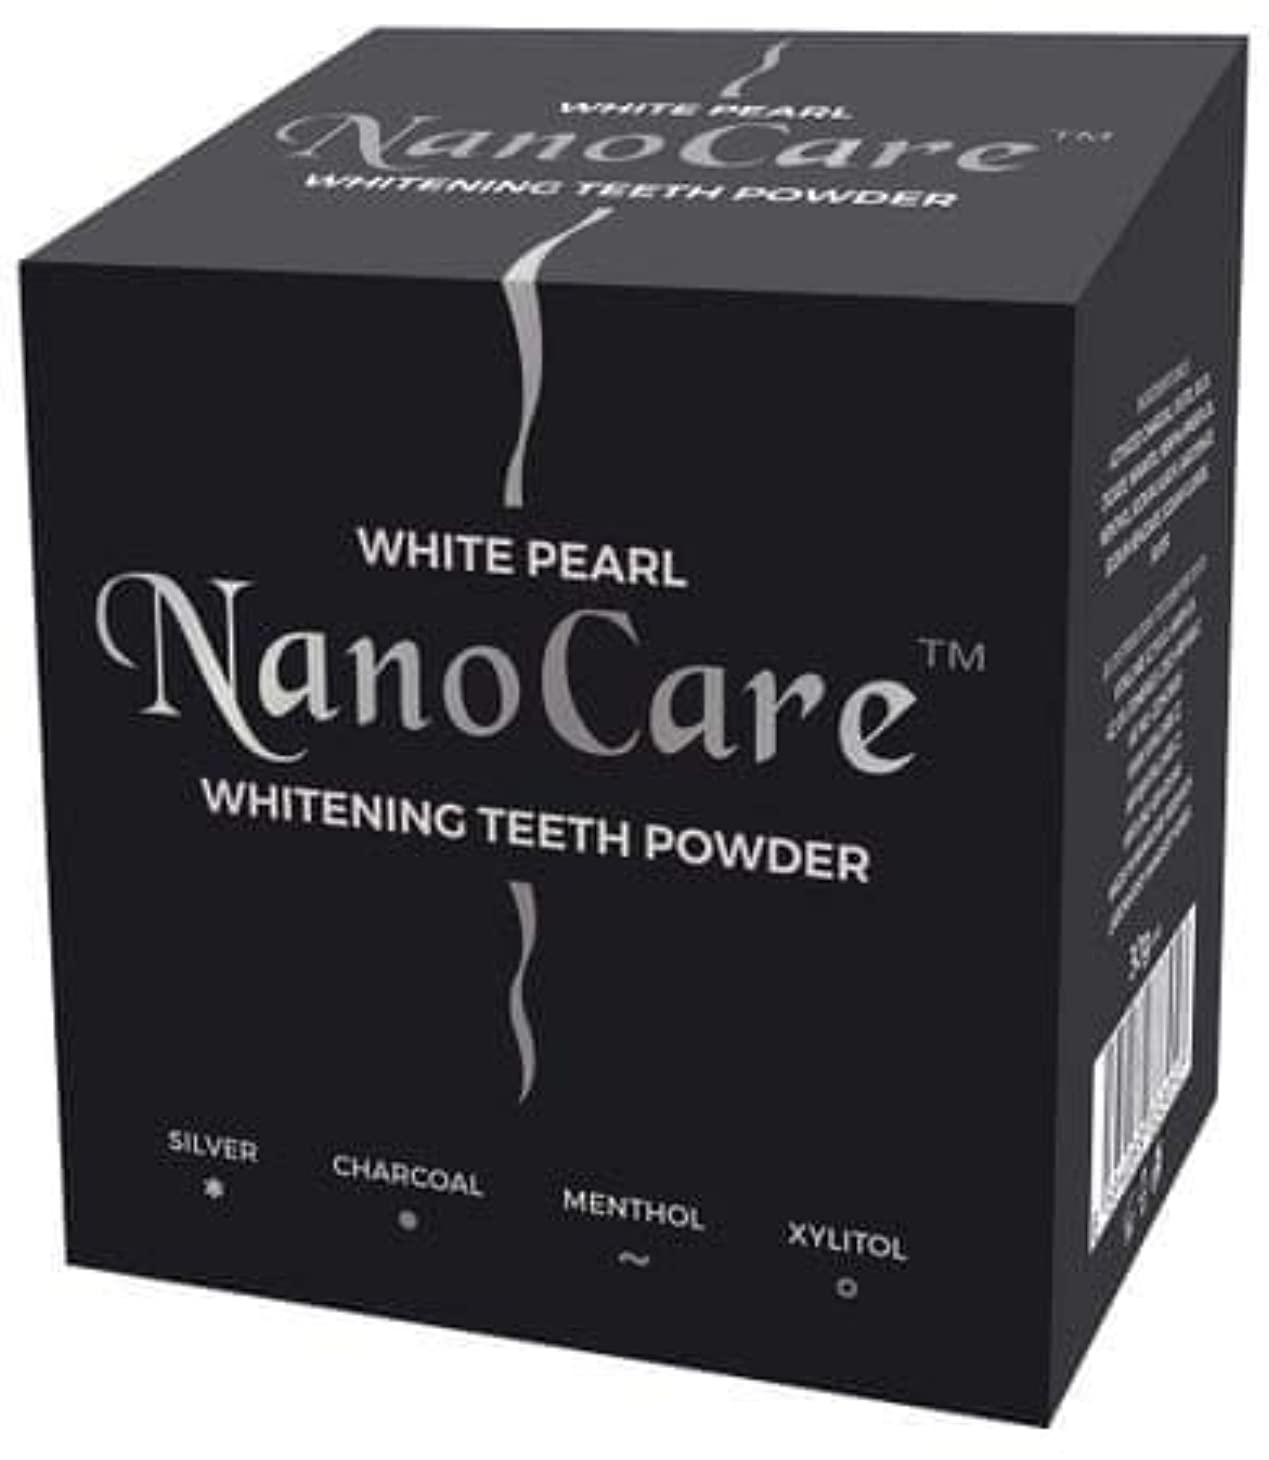 Nano Care Whitening Powder with Active Charcoal and Silver nanoparticles 30g Made in Korea / 活性炭と銀ナノ粒子30gのナノケアホワイトニングパウダー韓国製